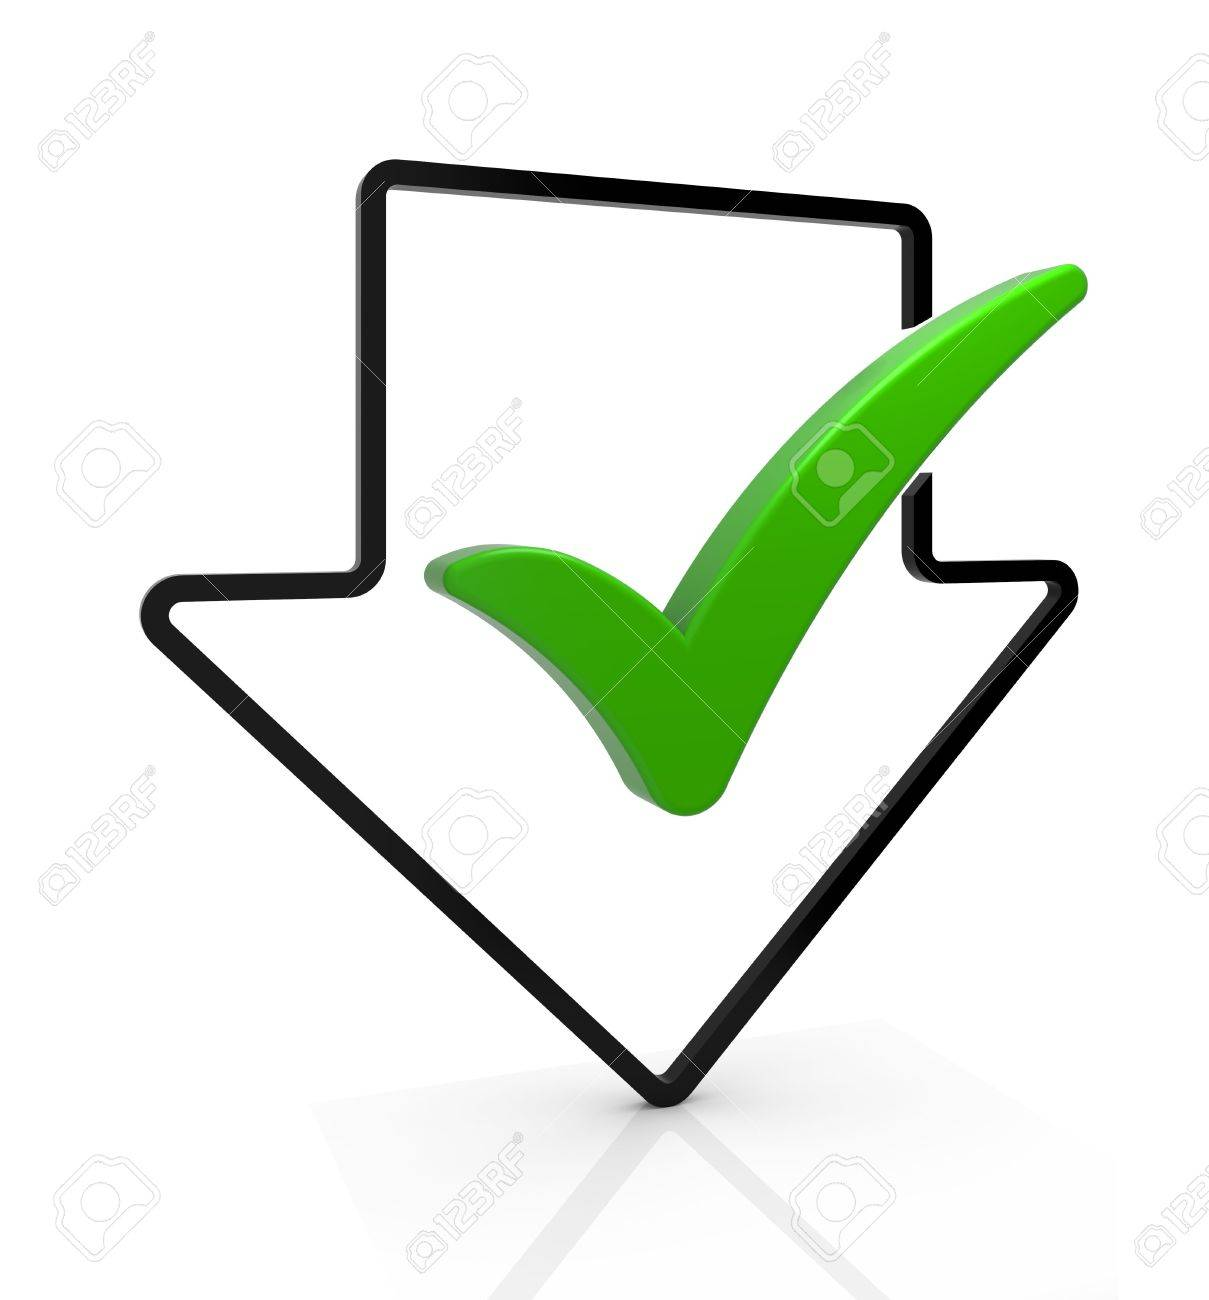 Download Complete Symbol Arrow With Check Mark Part Of A Series